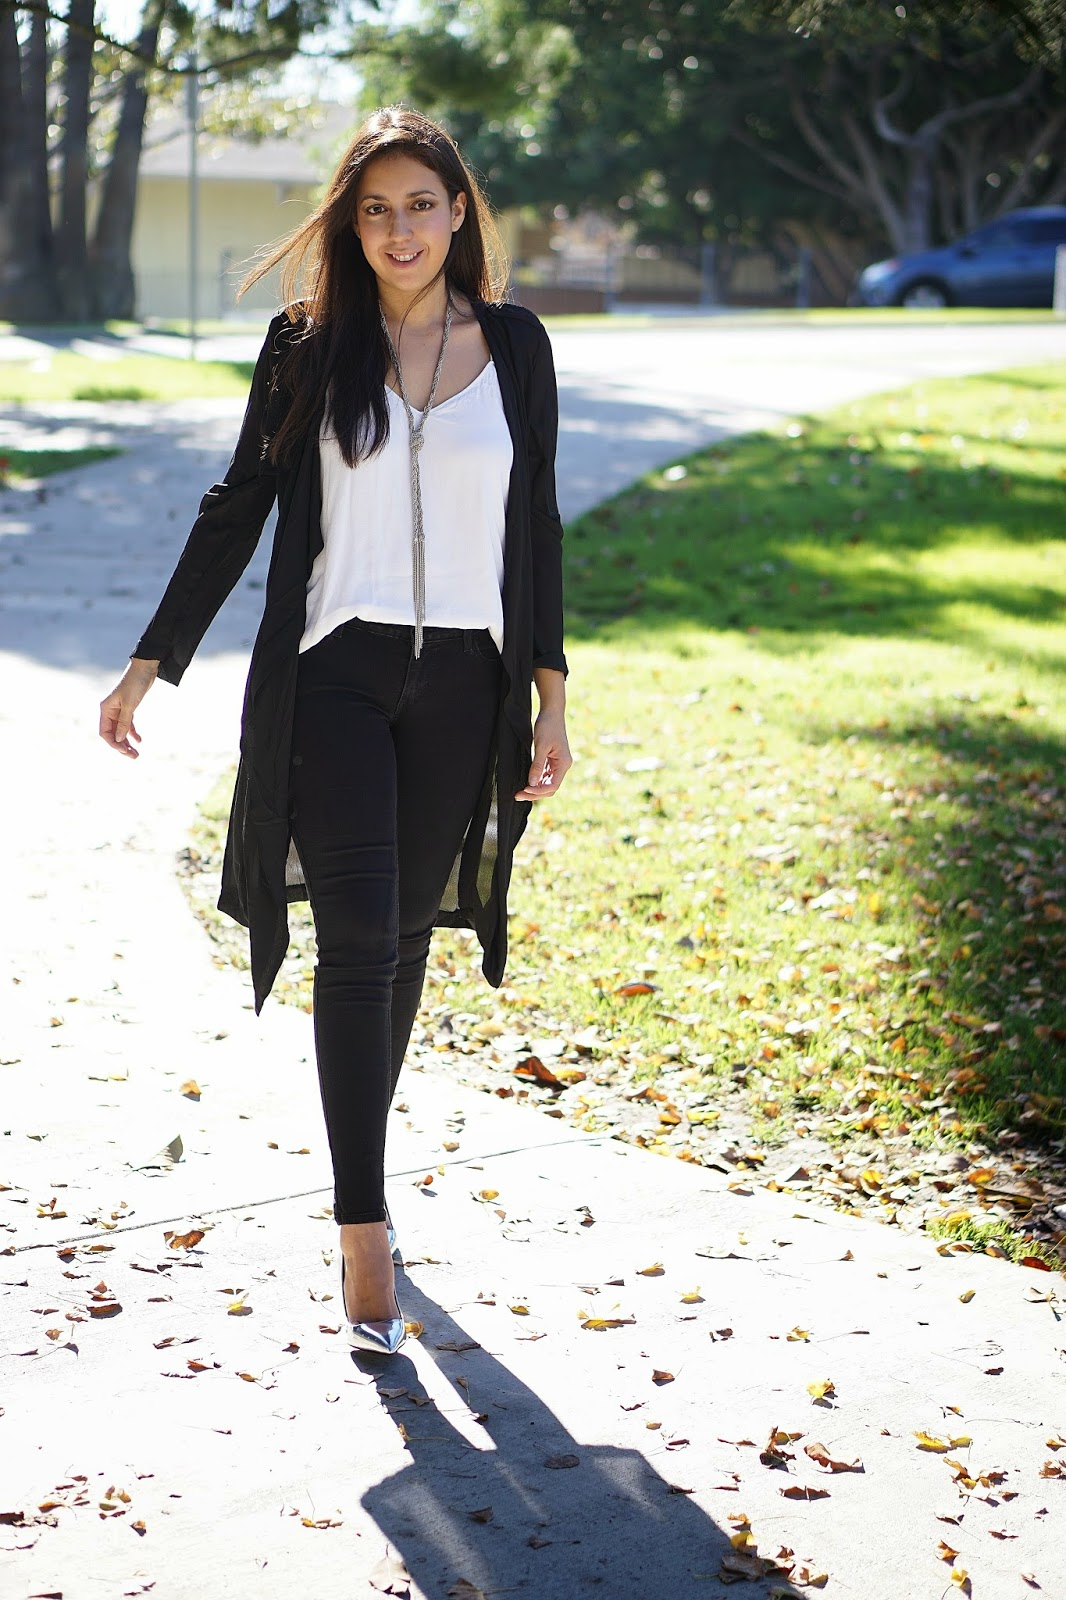 Latina Fashion Blogger, Fashion Blogger, Zara metallic heels, Zara Silver Pumps, Black Levis Jeggings, JCPenney, Levis Jeans, Mango White Top, Foreign Exchange Cardigan, Black Trench Coat, White and Black Outfit,